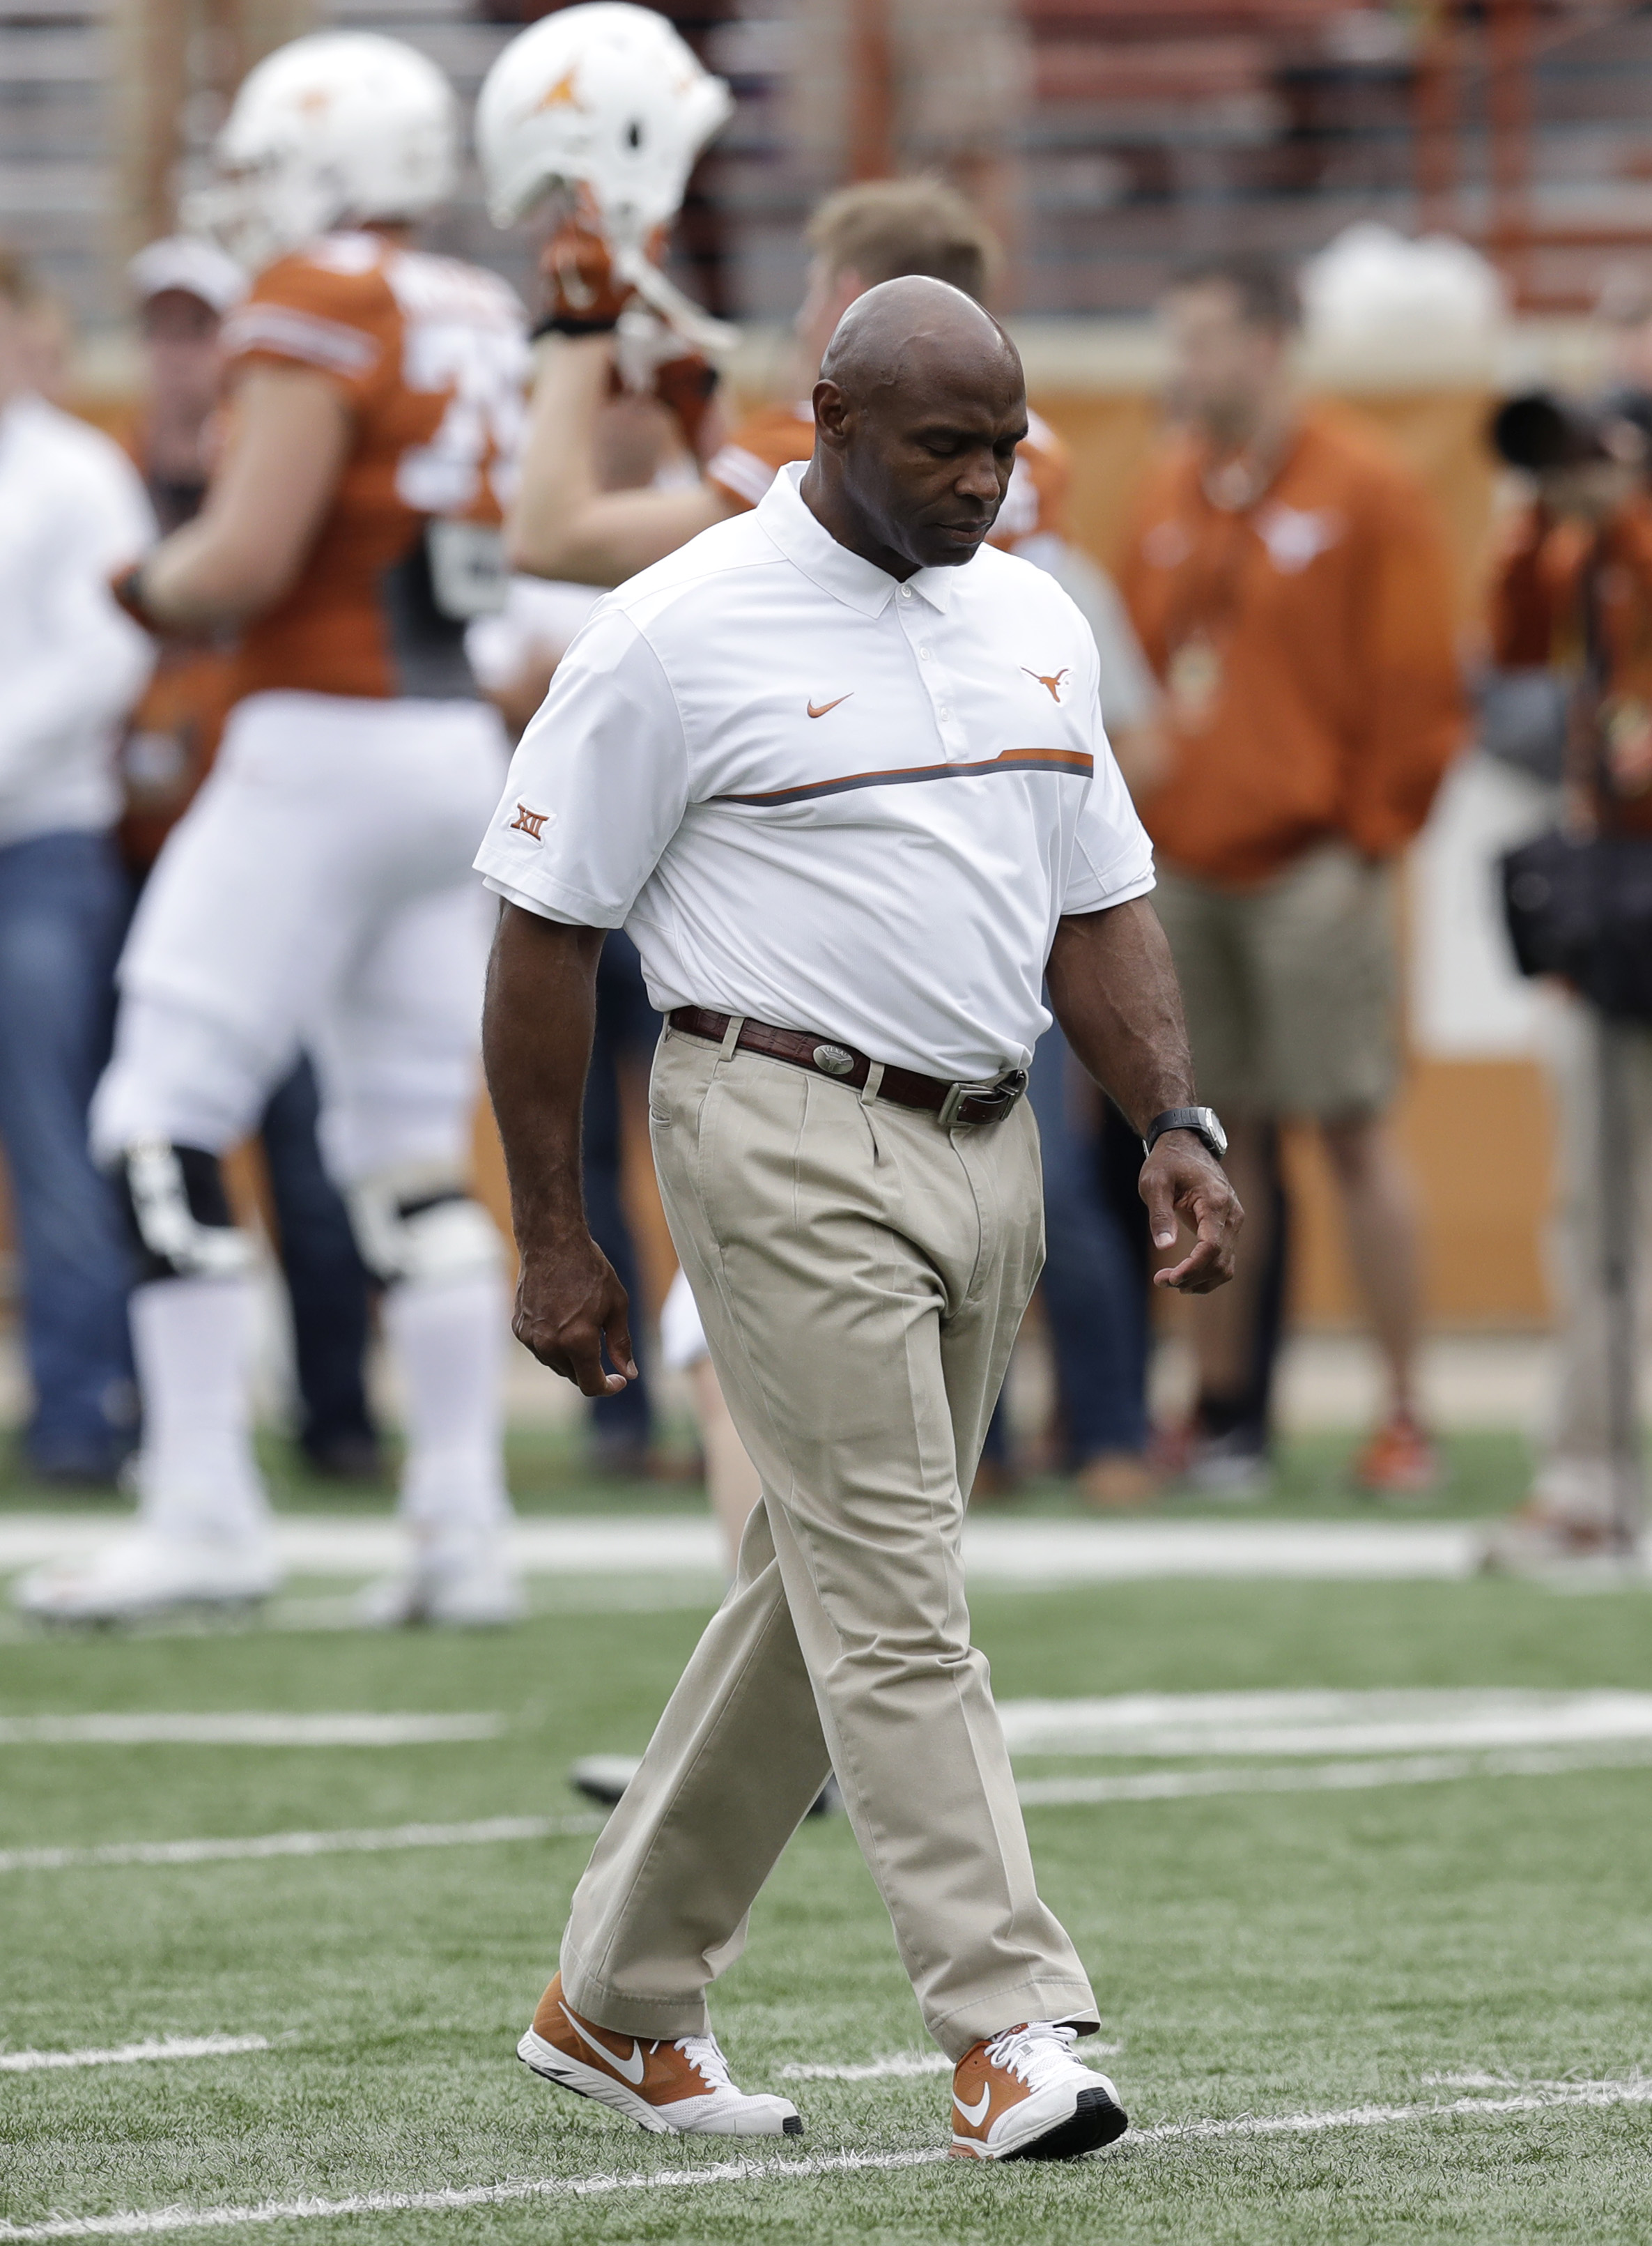 26001c32ad22 rssfeeds.usatoday.com Texas has  let go  coach Charlie Strong after 3  seasons